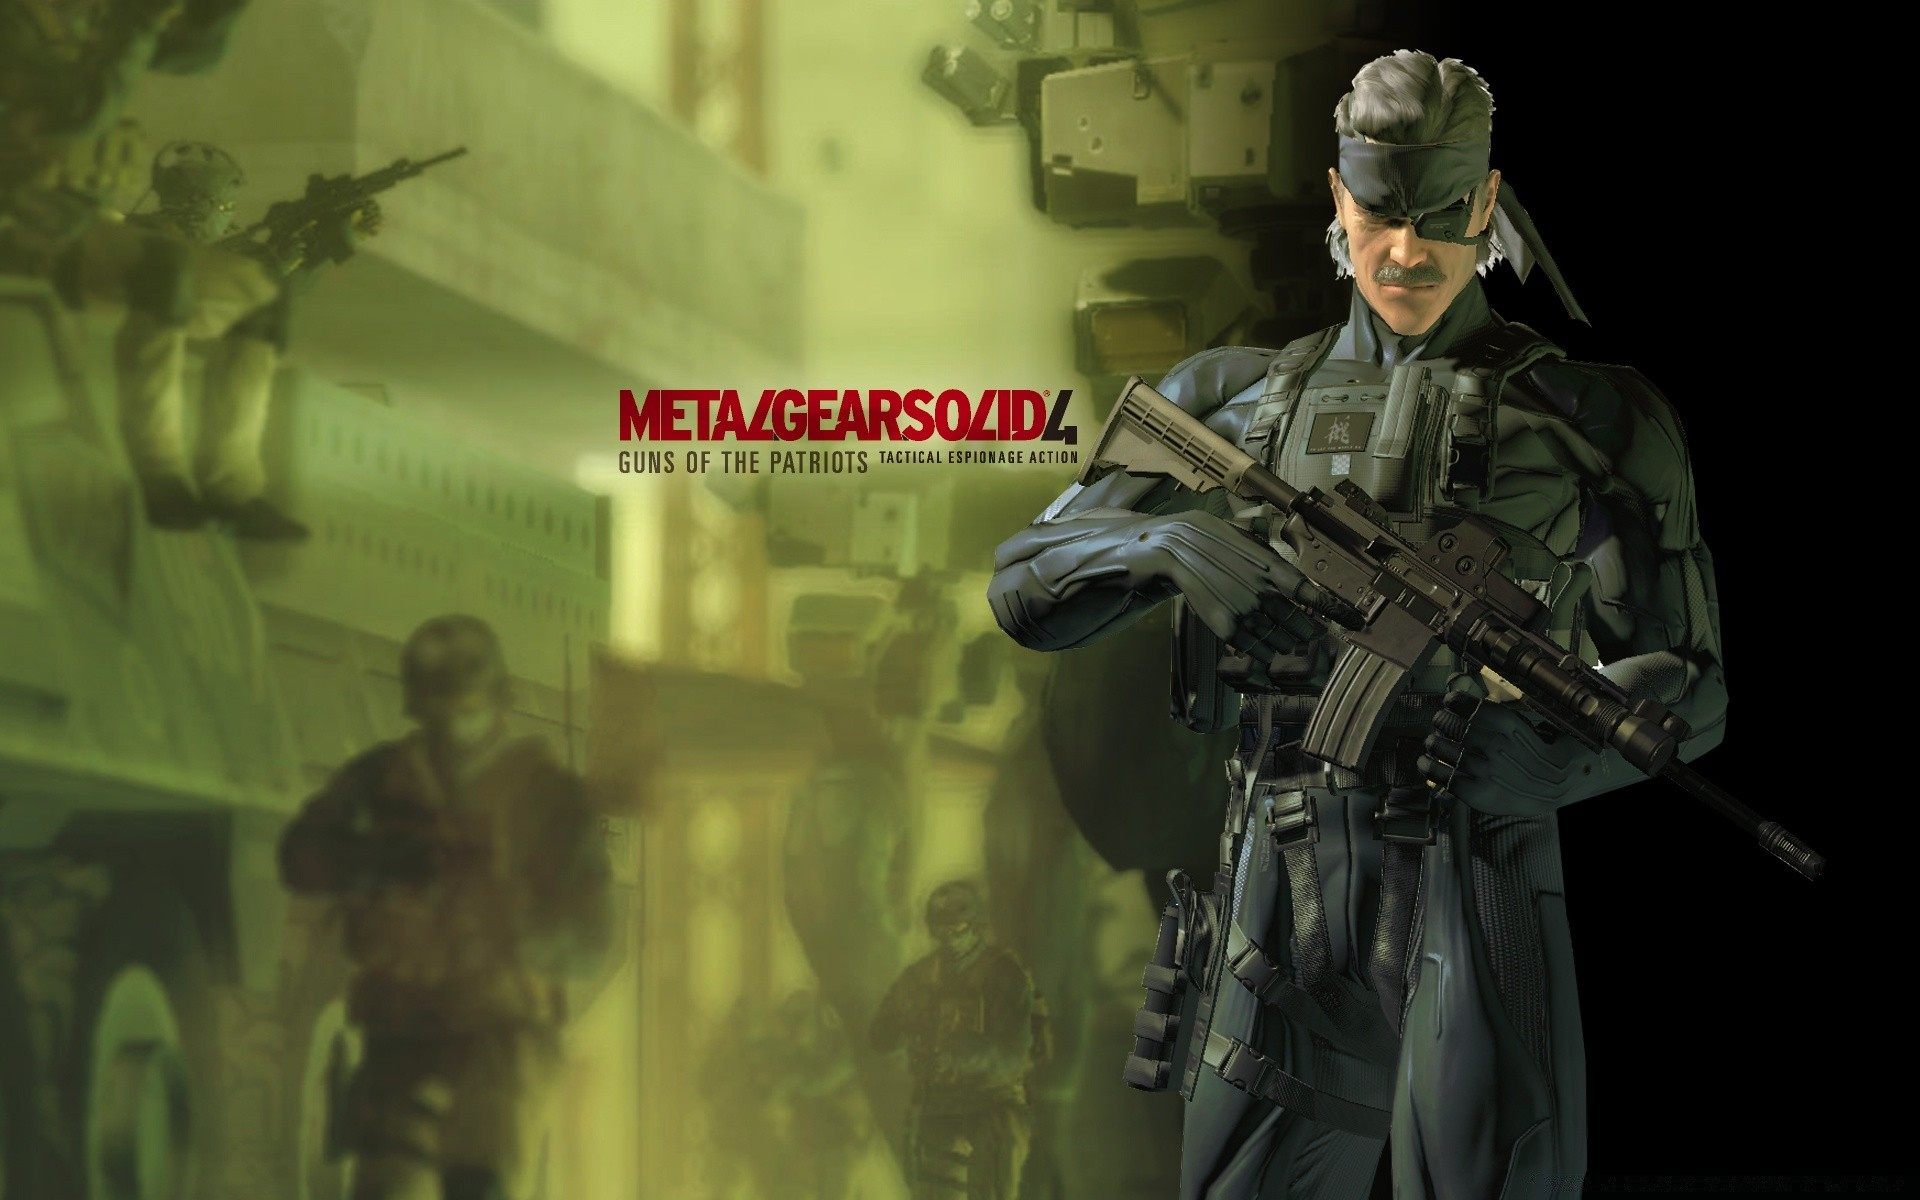 Metal Gear Solid пушки патриотов